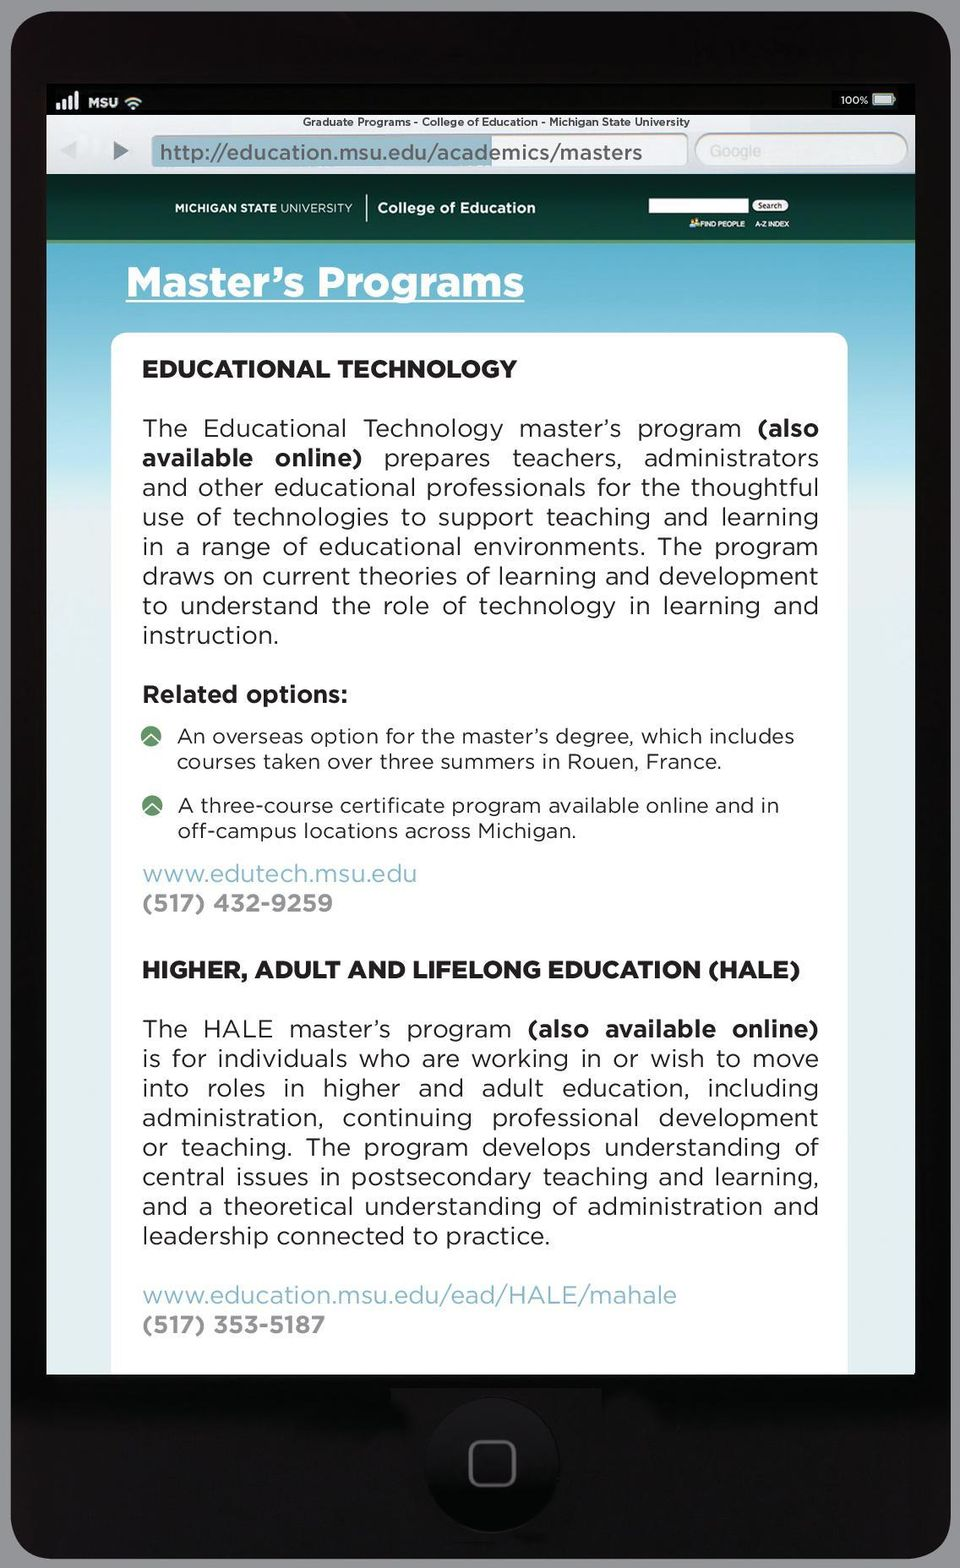 professionals for the thoughtful use of technologies to support teaching and learning in a range of educational environments.